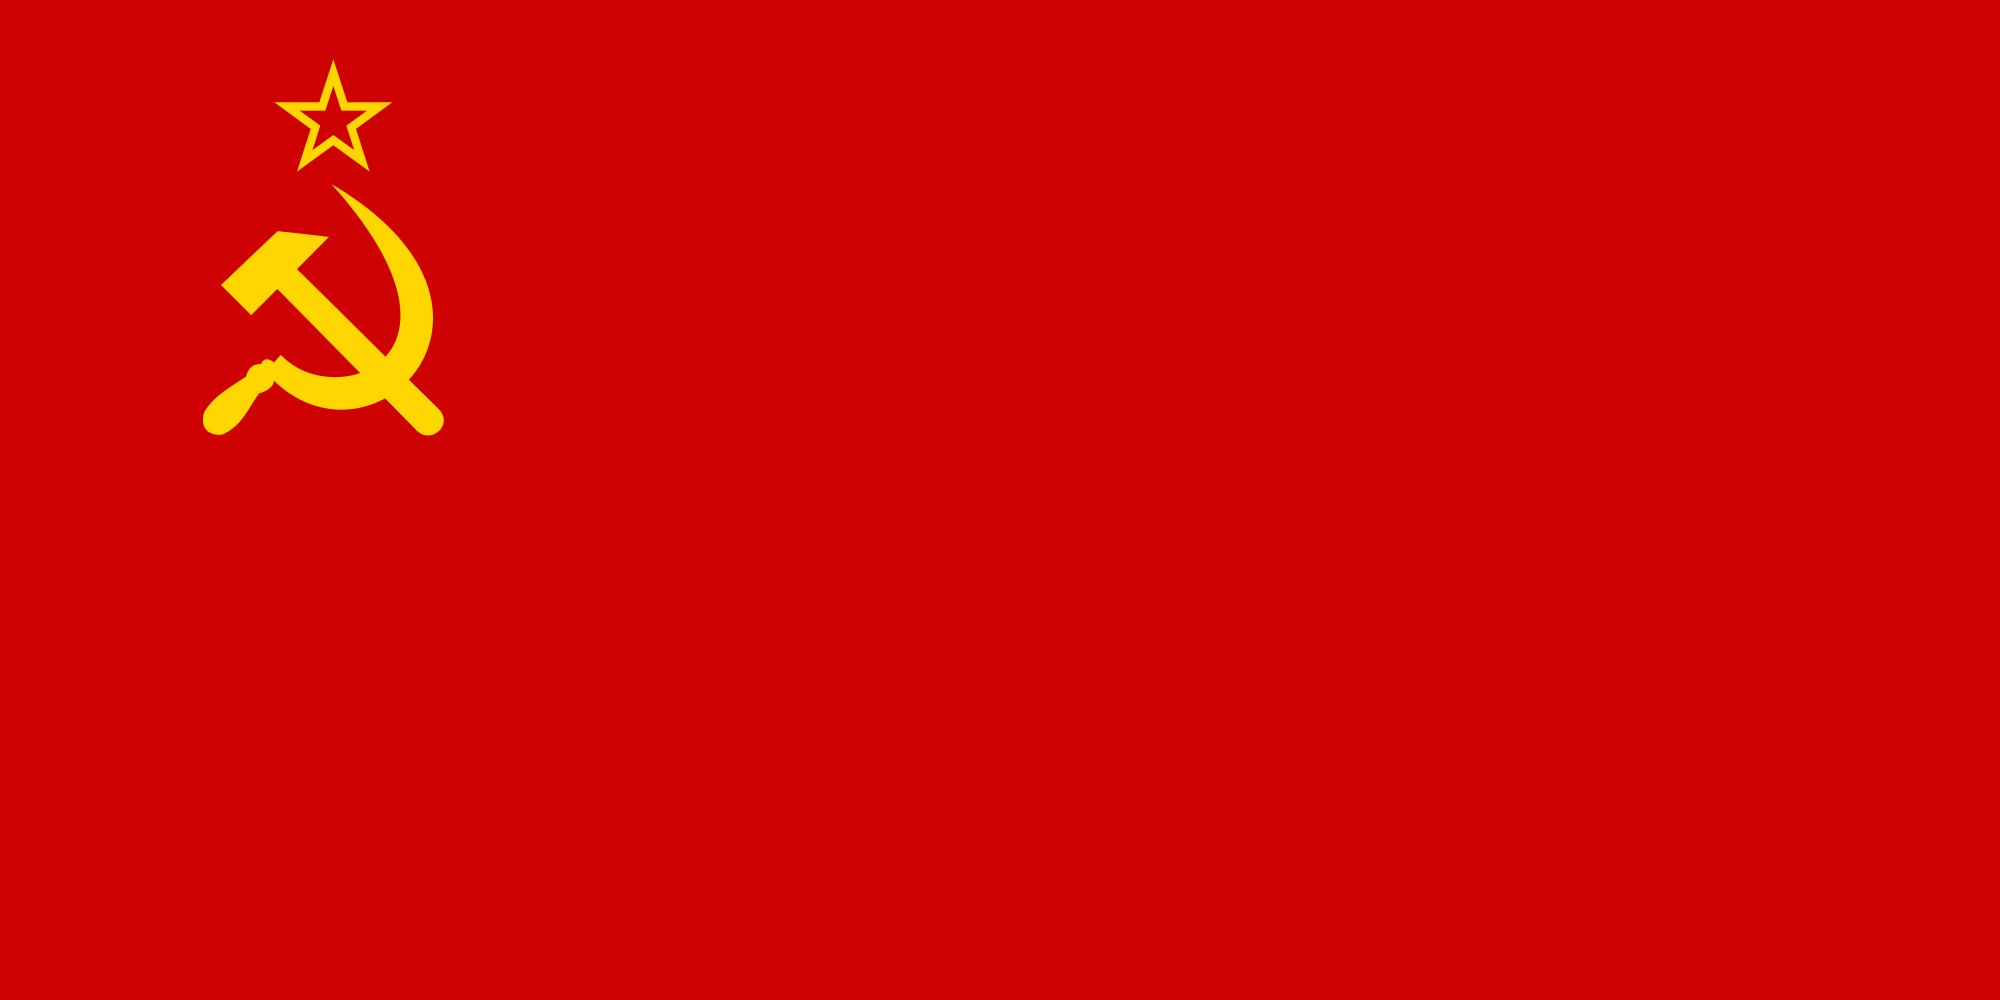 USSR_Flag_Vista.jpg